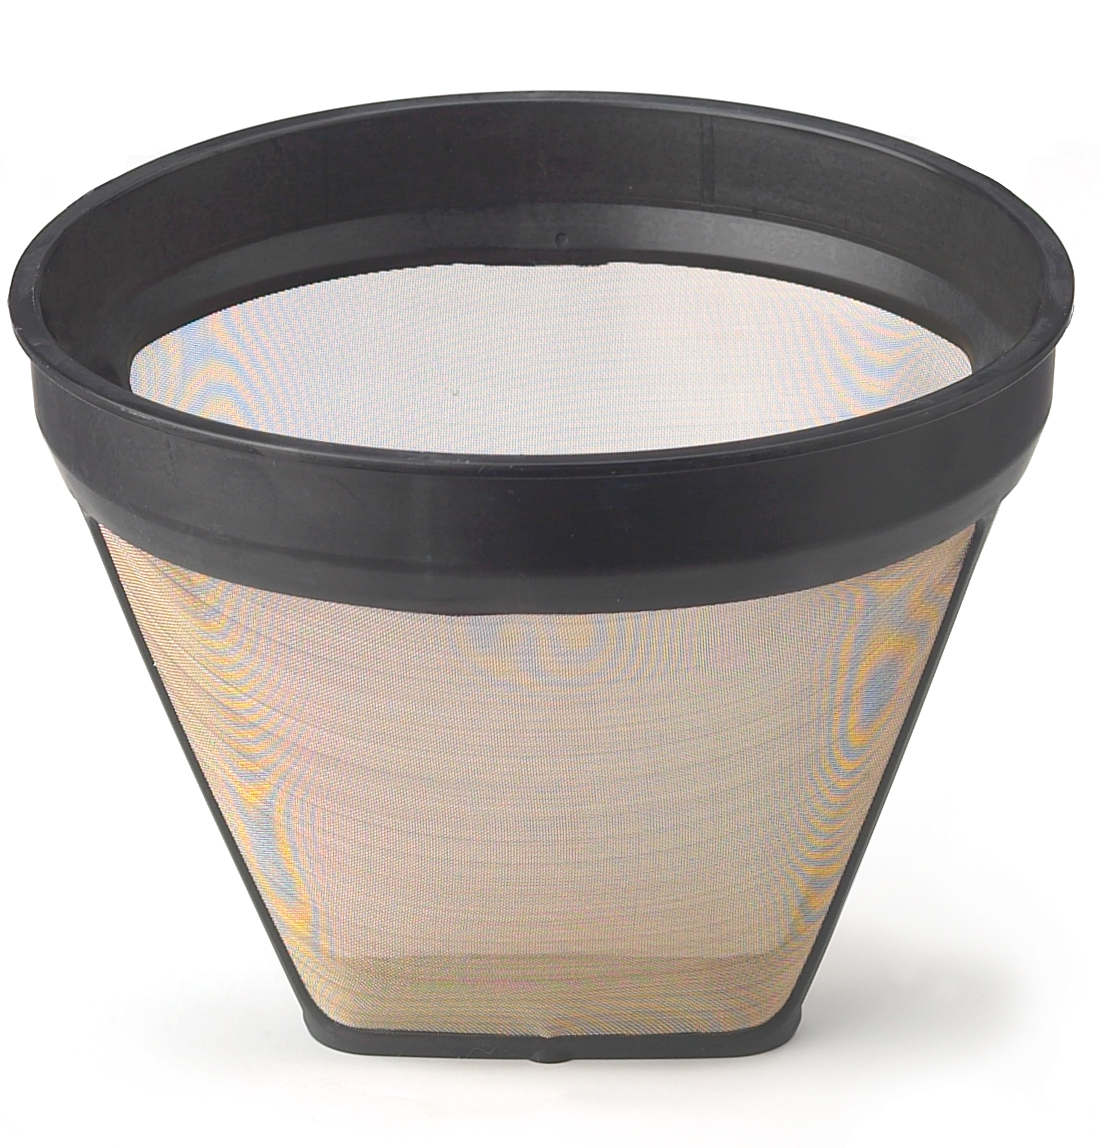 HIC Gold Tone Reusable Coffee Filter, Number 2-Size Filter, Brews 2 to 6-Cups